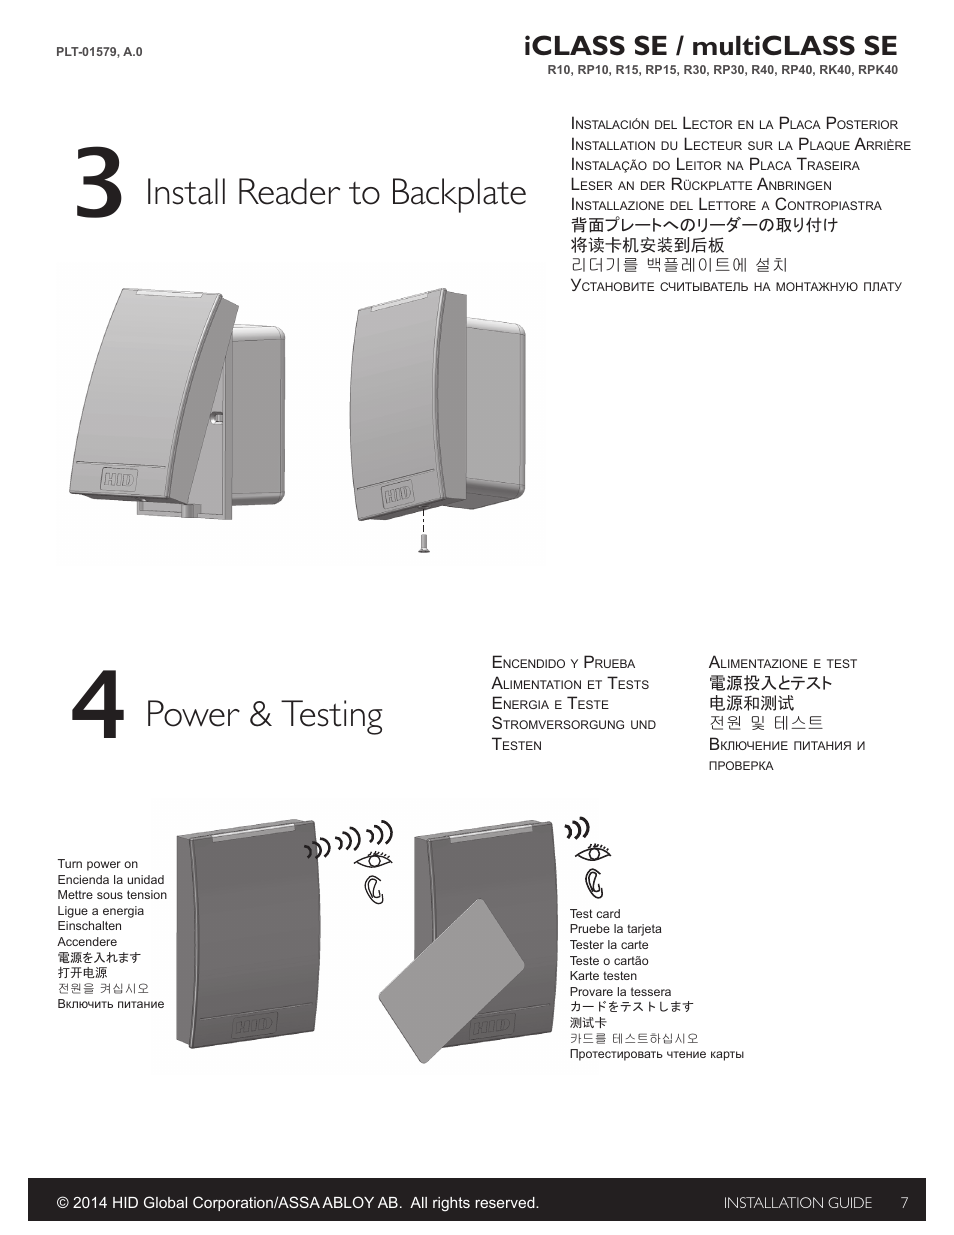 Install reader to backplate, Power & testing, Iclass se